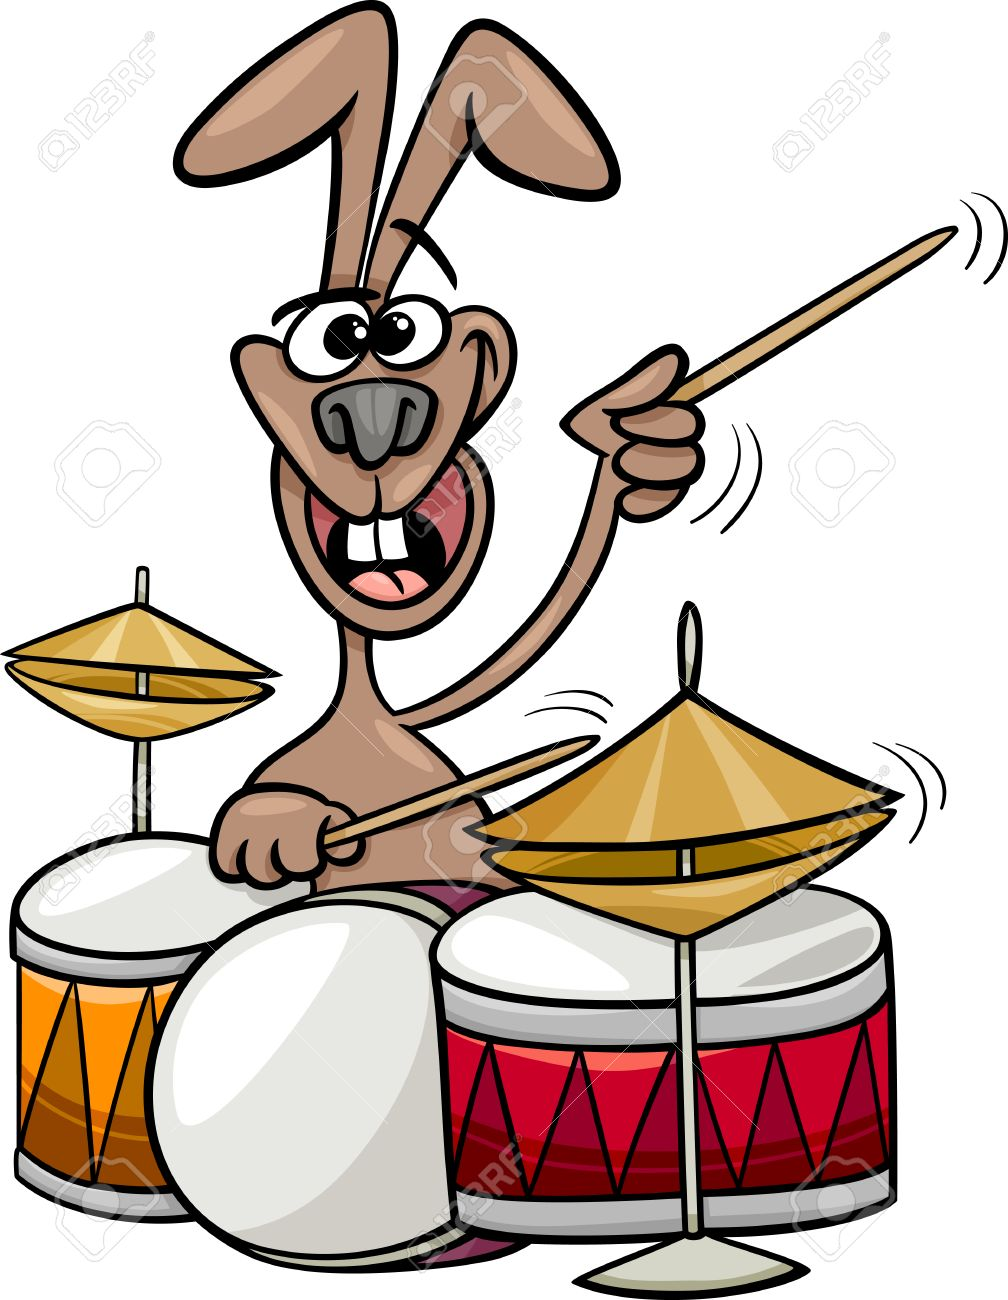 Cartoon Illustration Of Funny Bunny Playing Rock On Drums Royalty ...